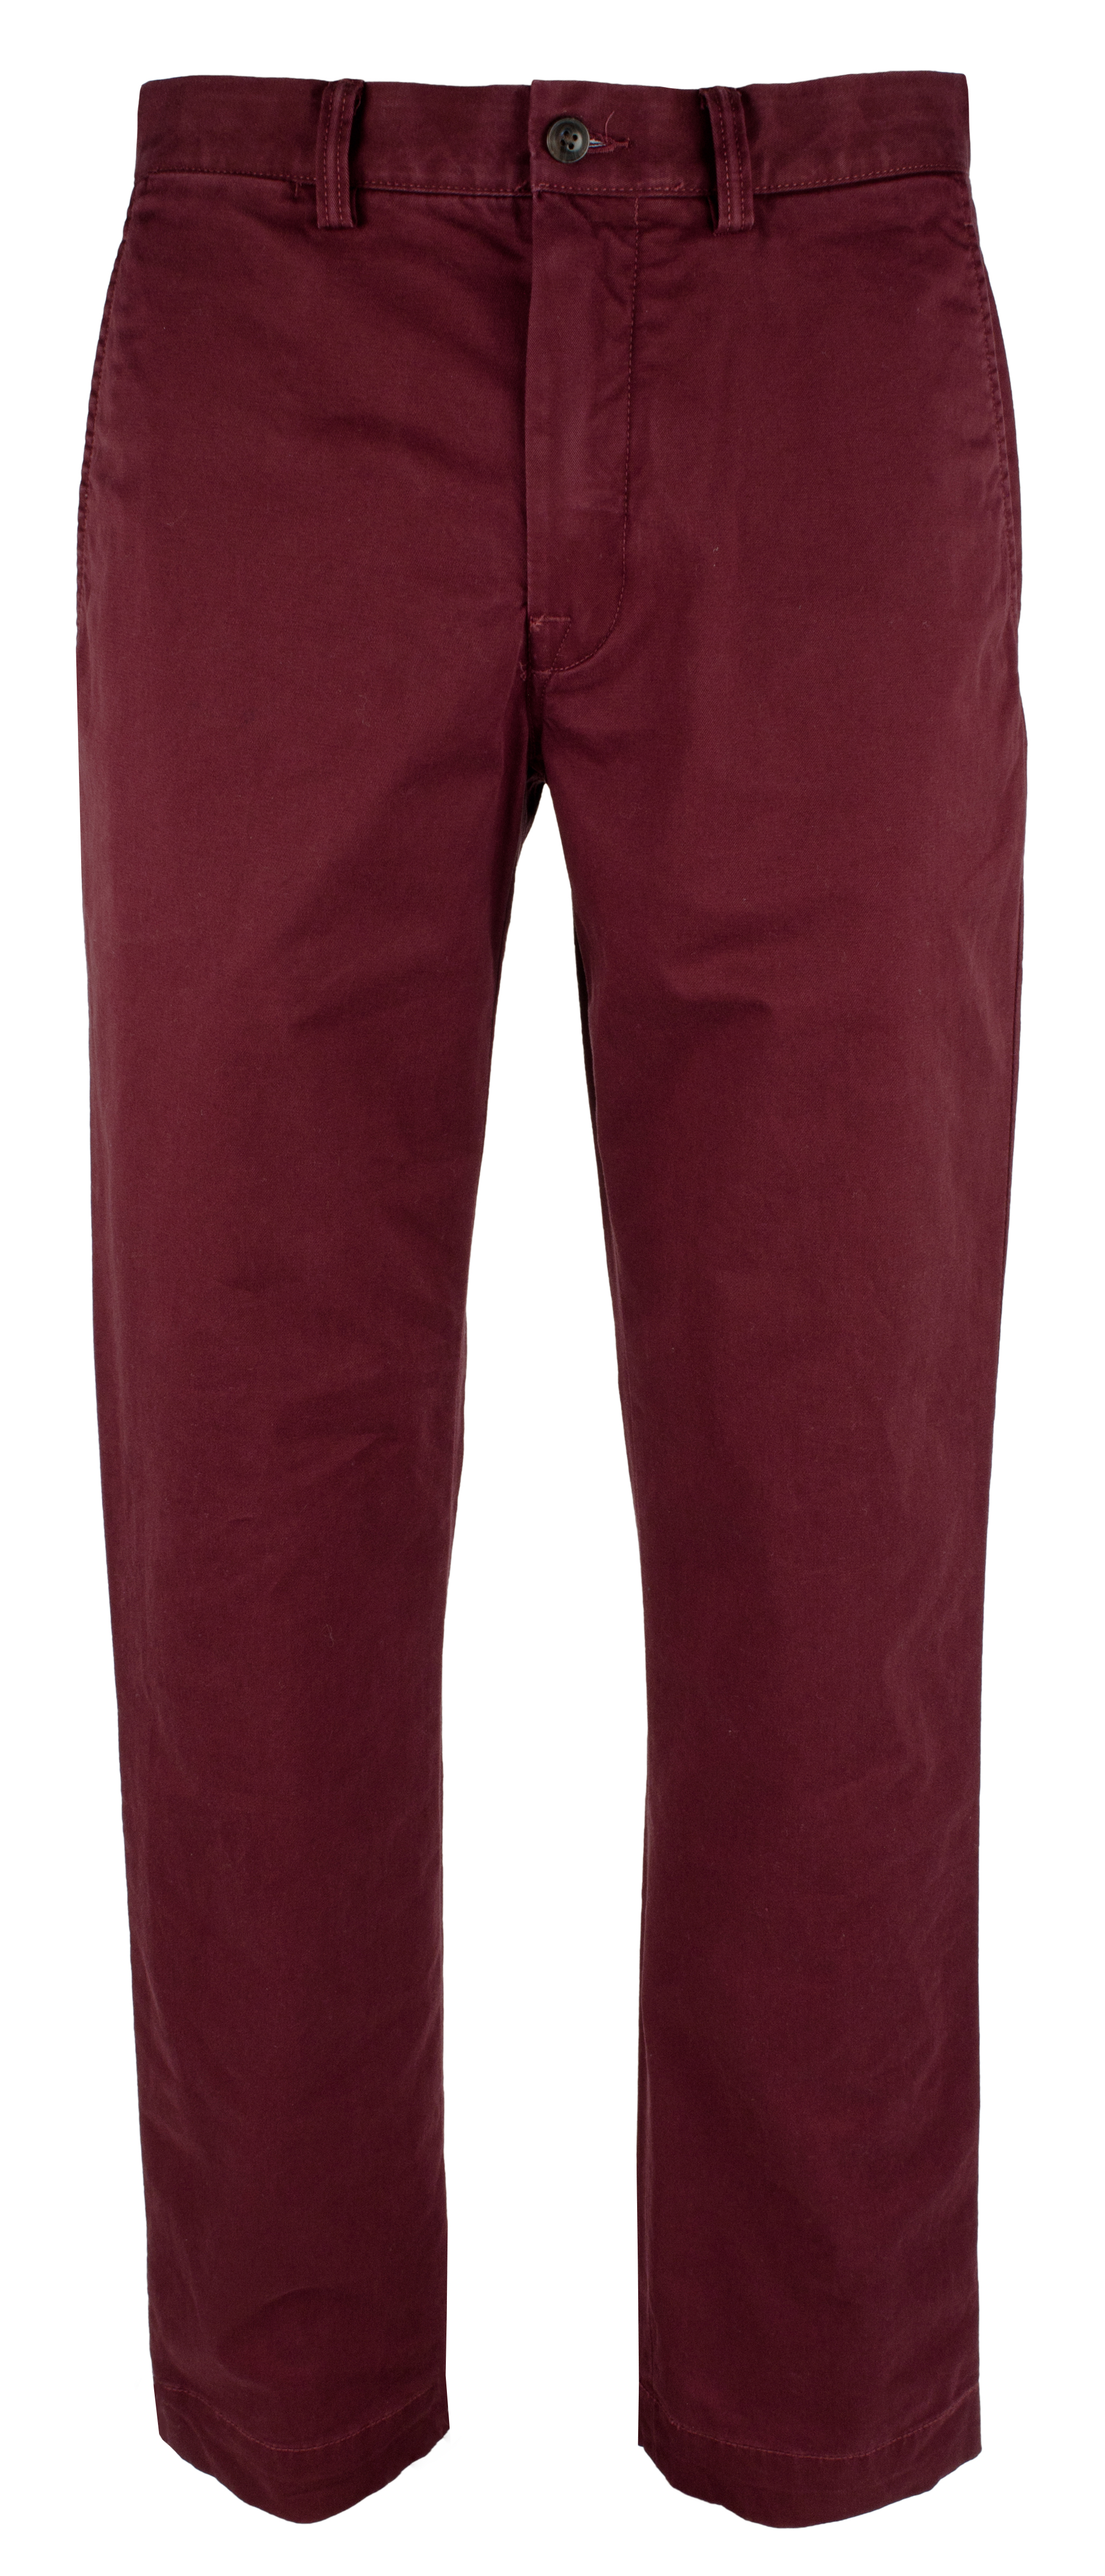 Polo Ralph Lauren Mens Big and Tall Stretch Classic Fit Chino Pants-R-44BX30L Wine